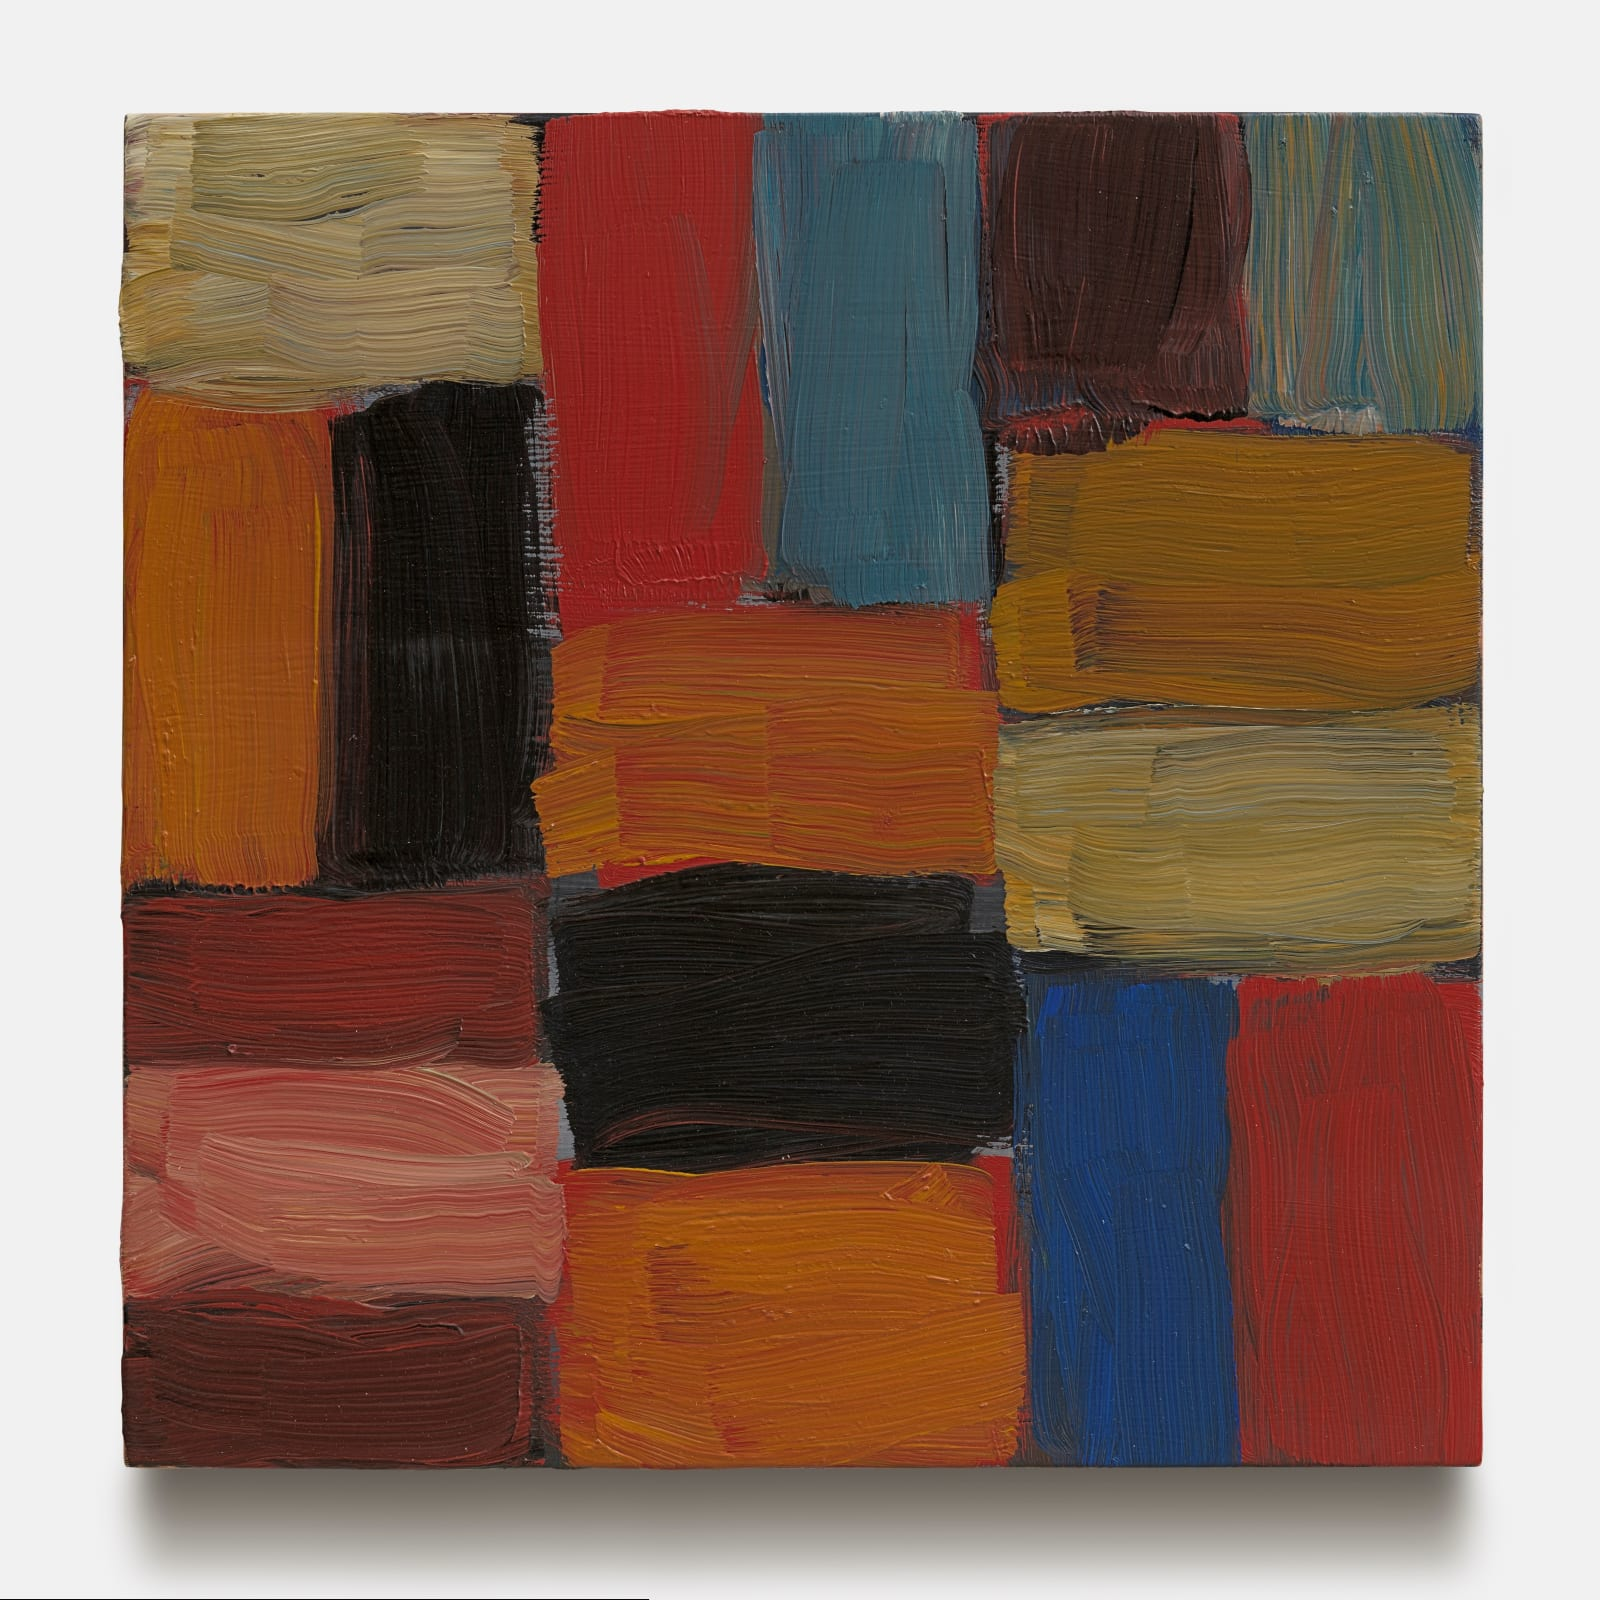 Sean Scully, Wall Orange, 2016